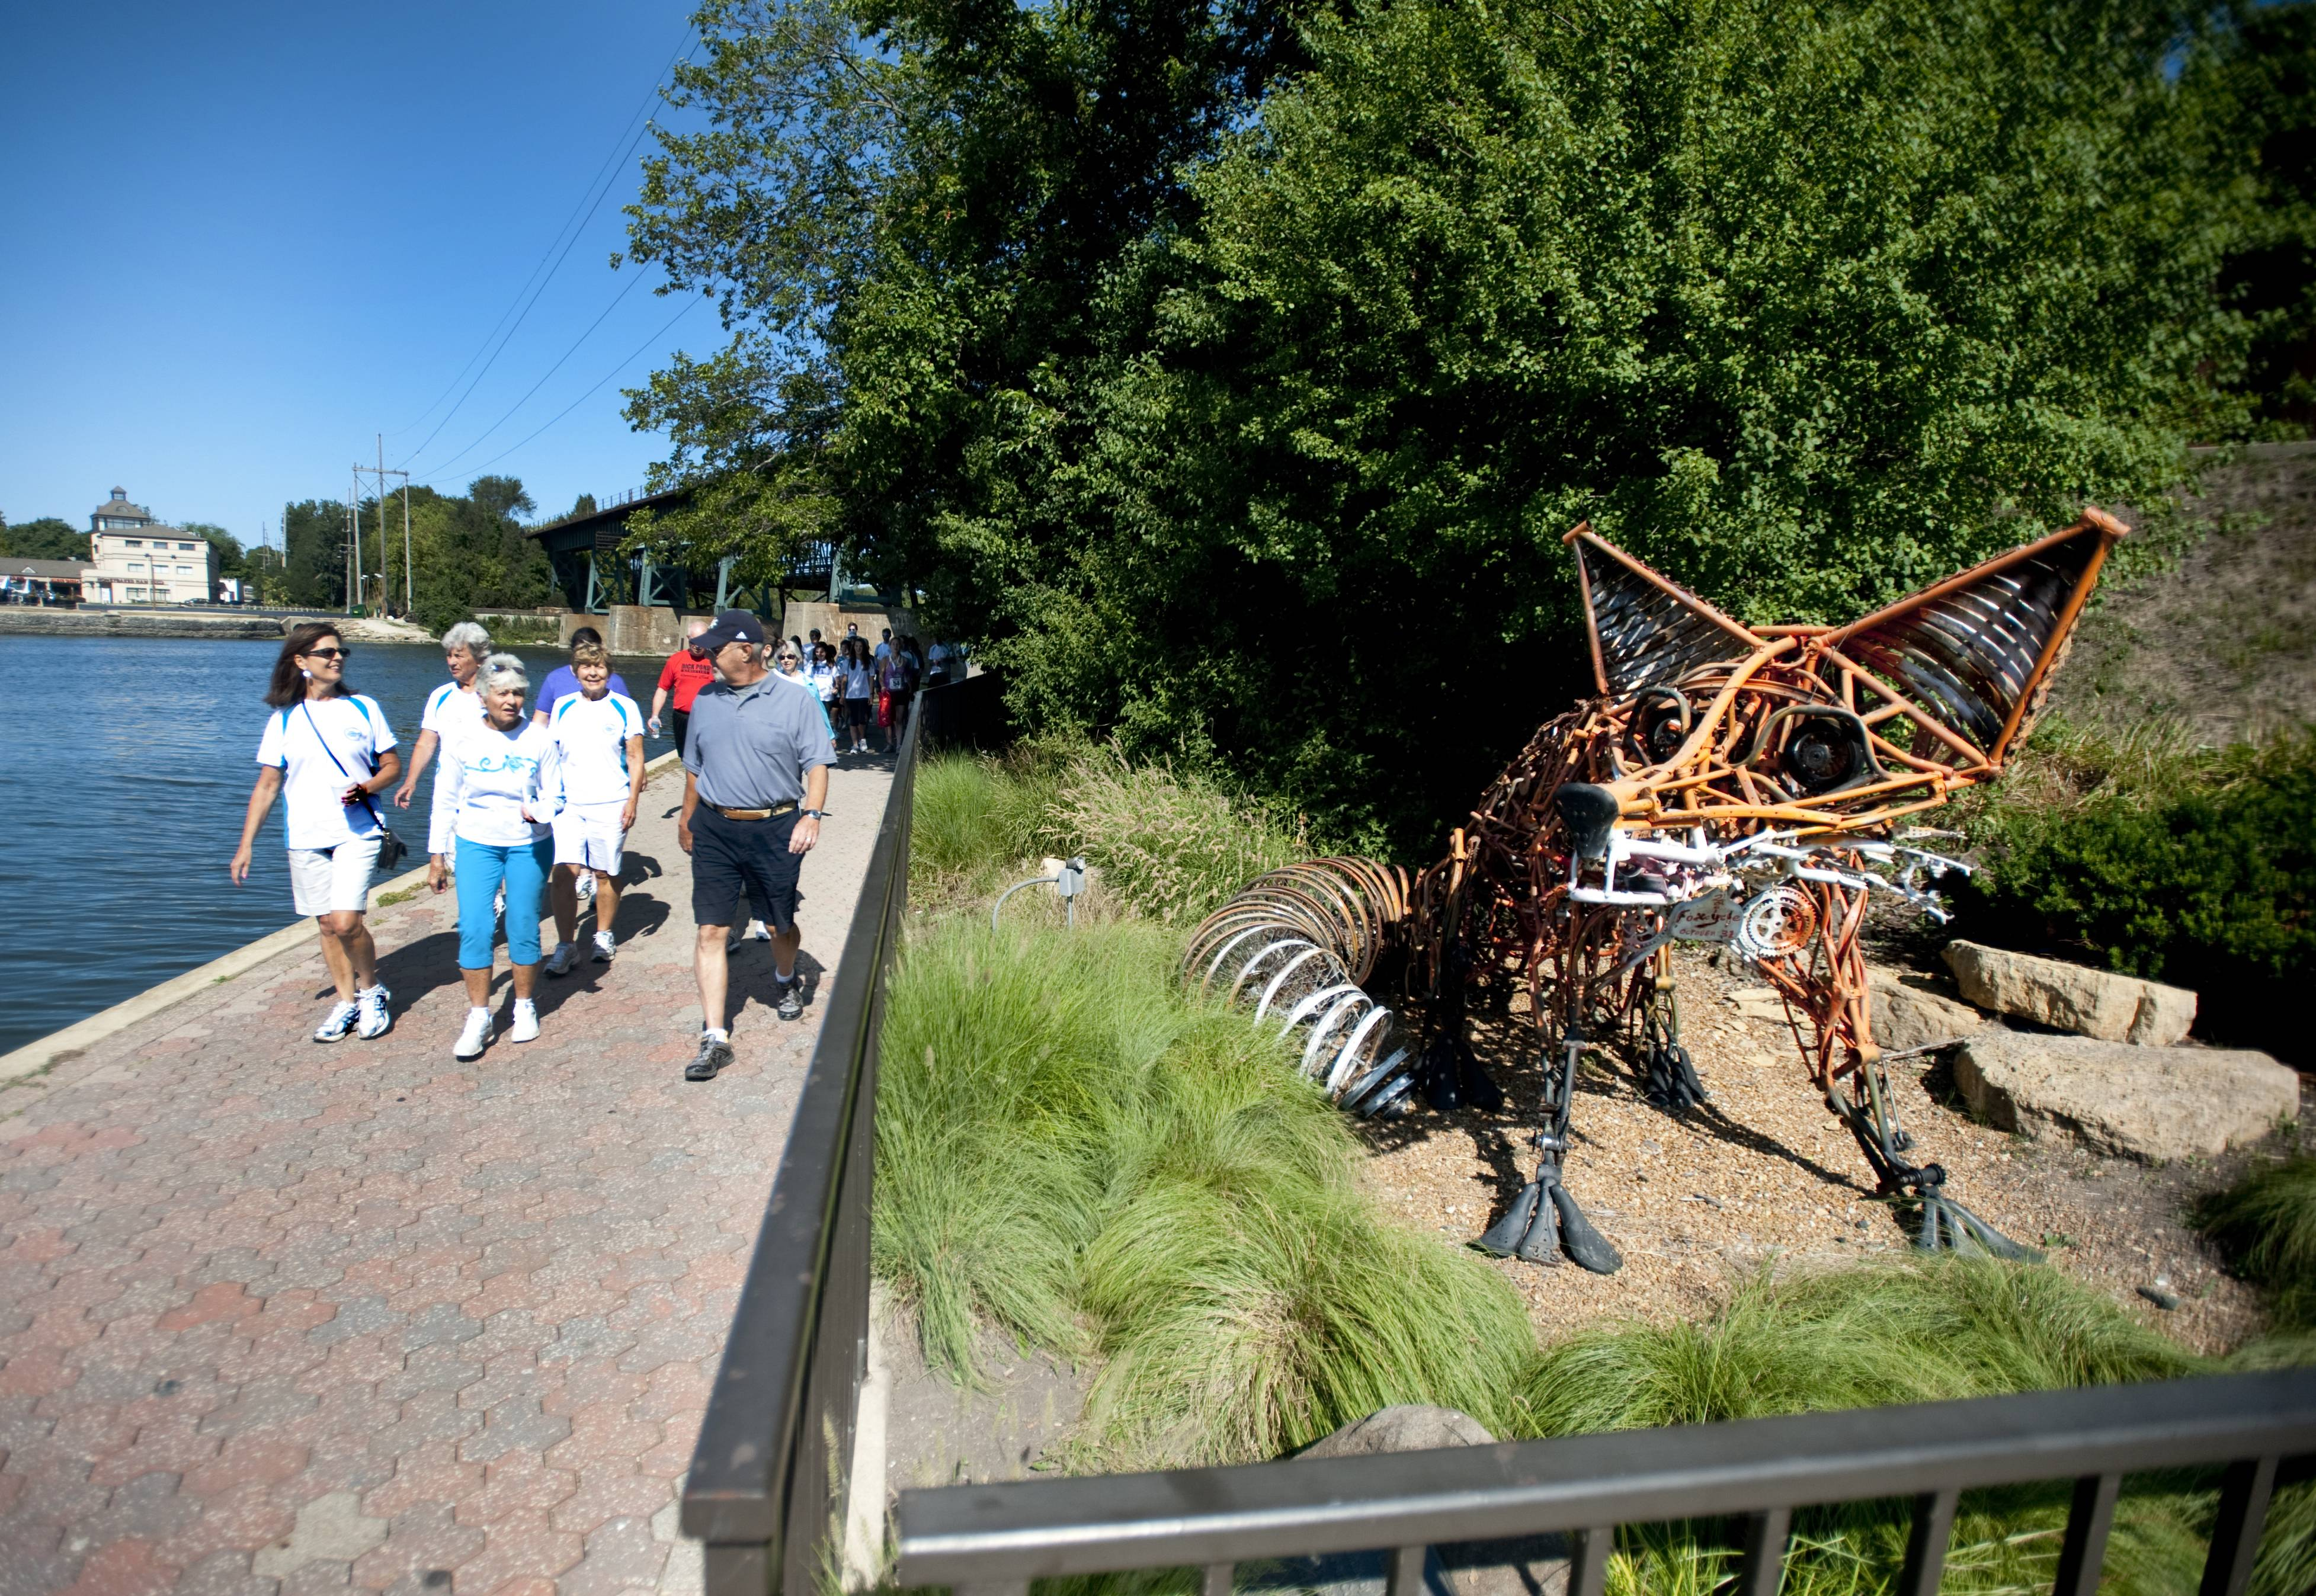 Participants in the walking portion of the Bob Leonard River Run/Walk can view sculptures in the park along the way.